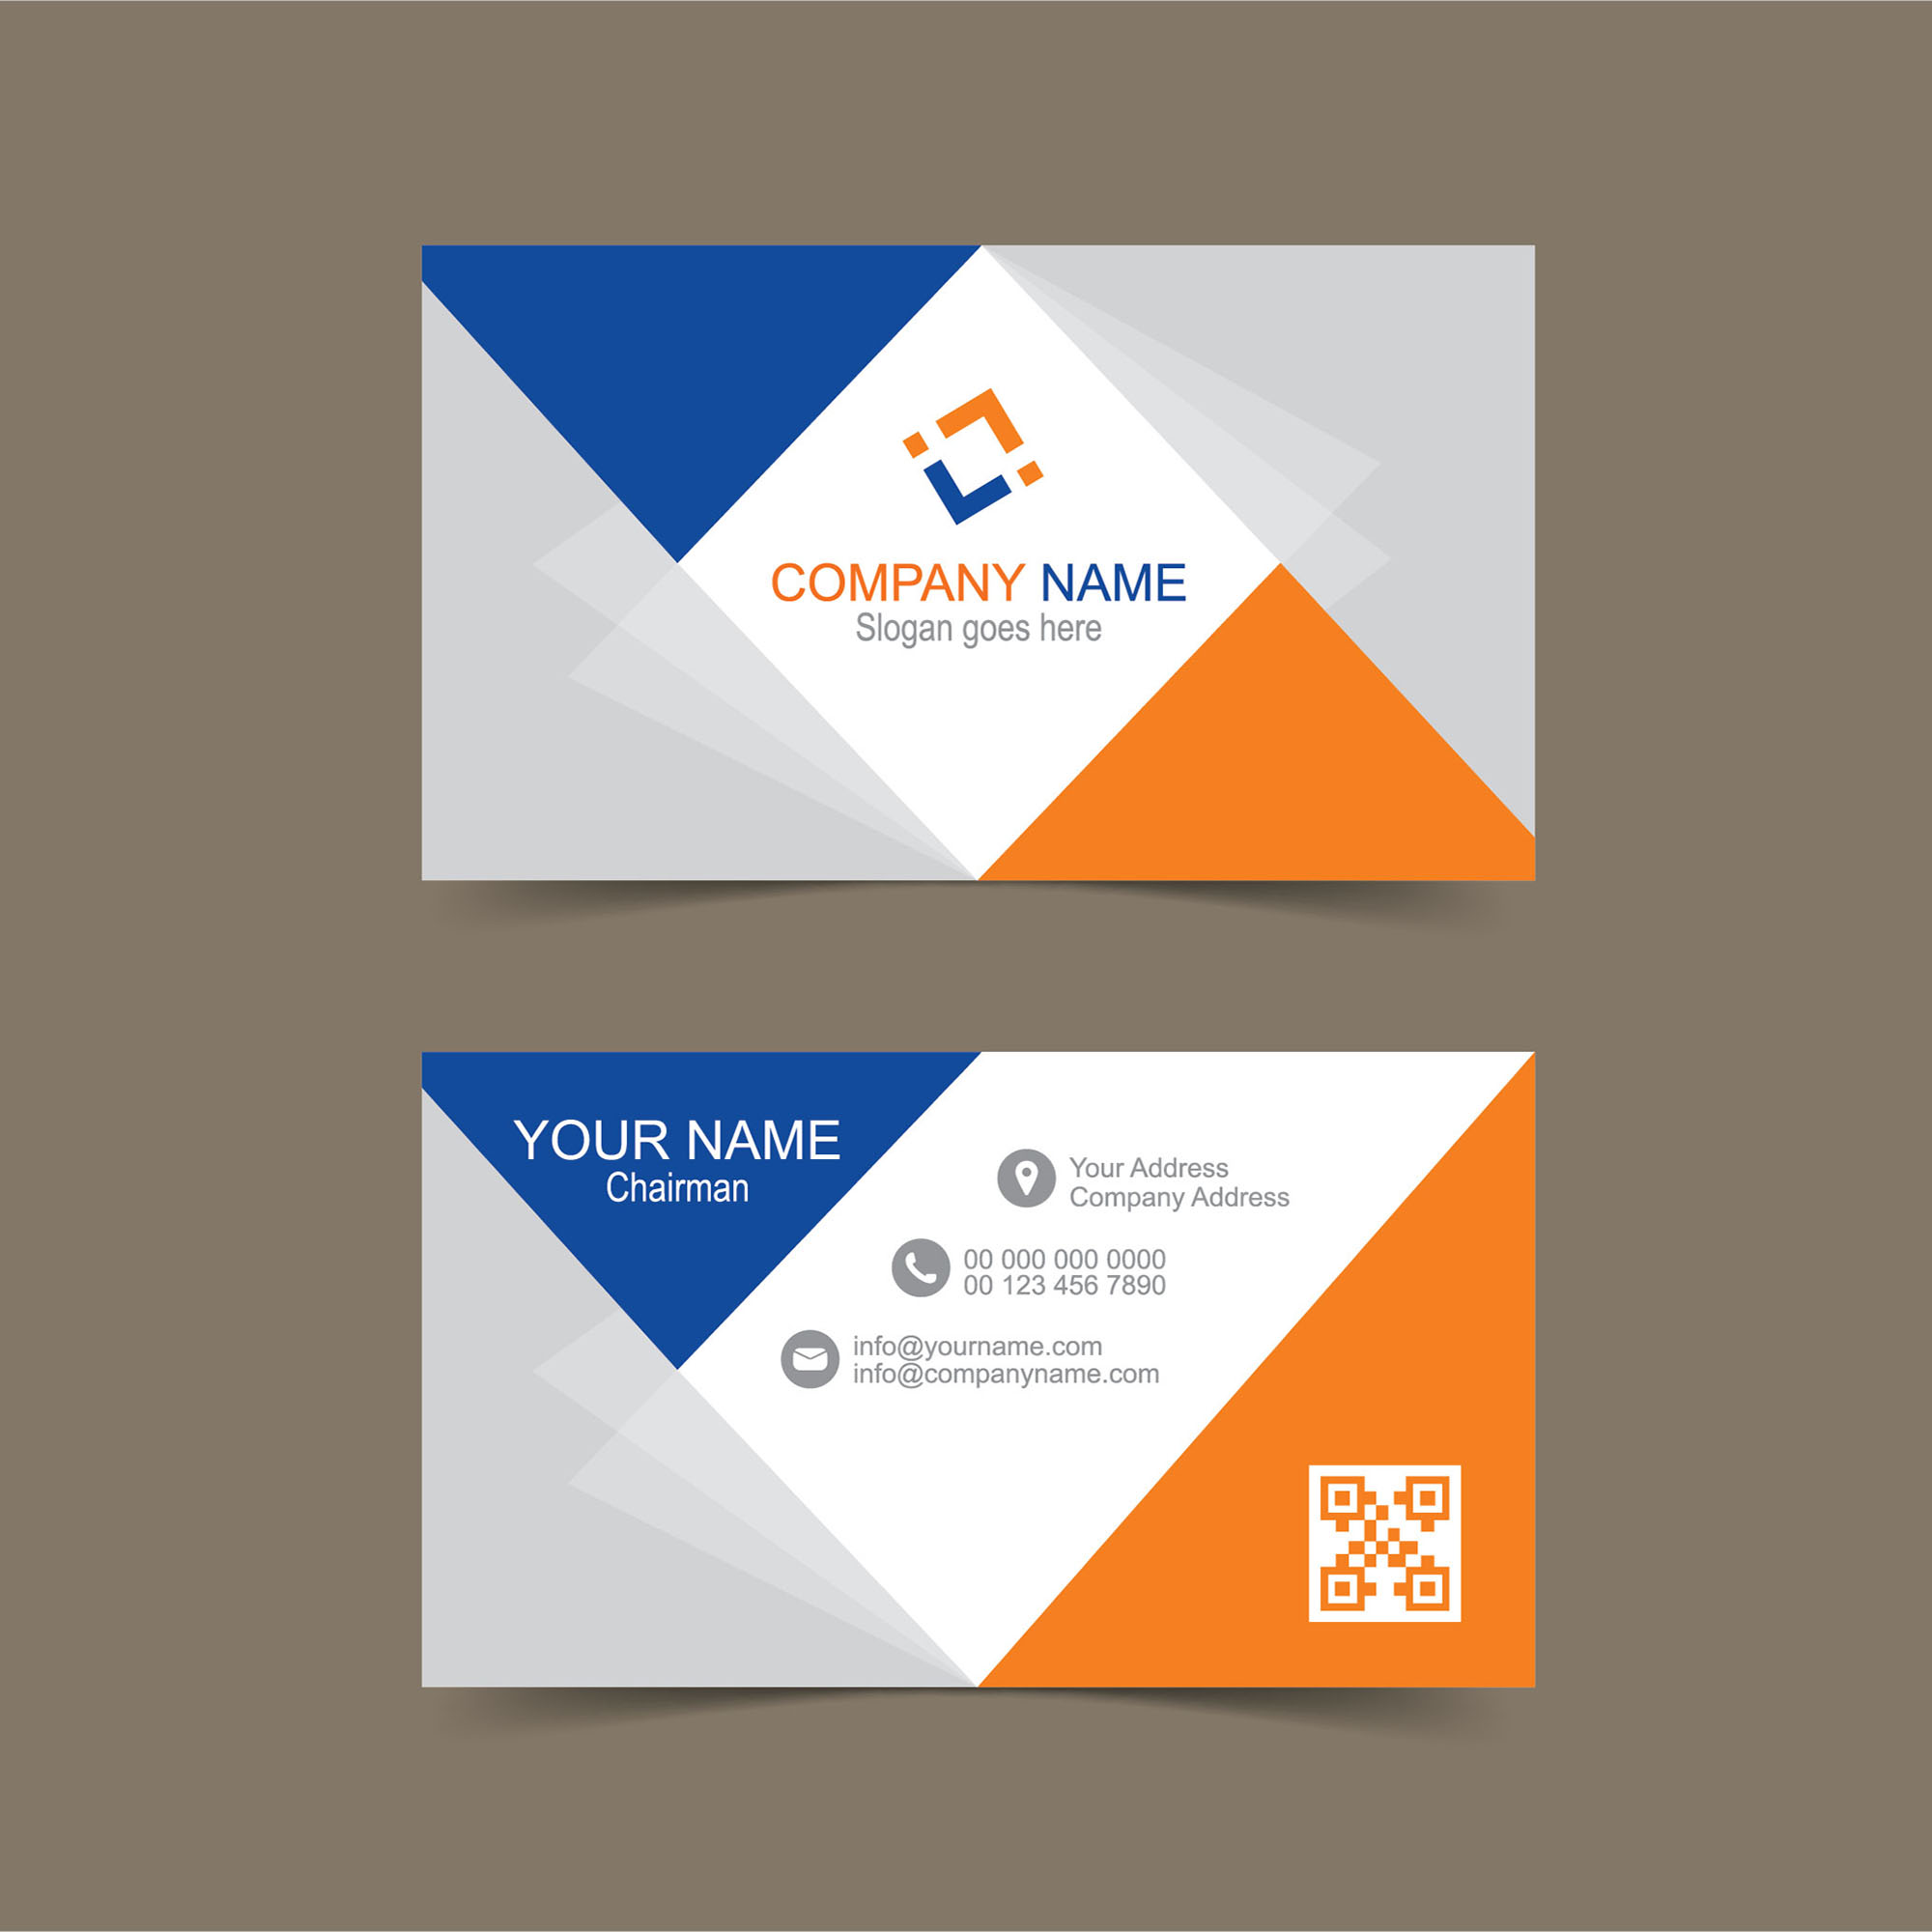 Free business card template for illustrator wisxi business card business cards business card design business card template design templates cheaphphosting Gallery